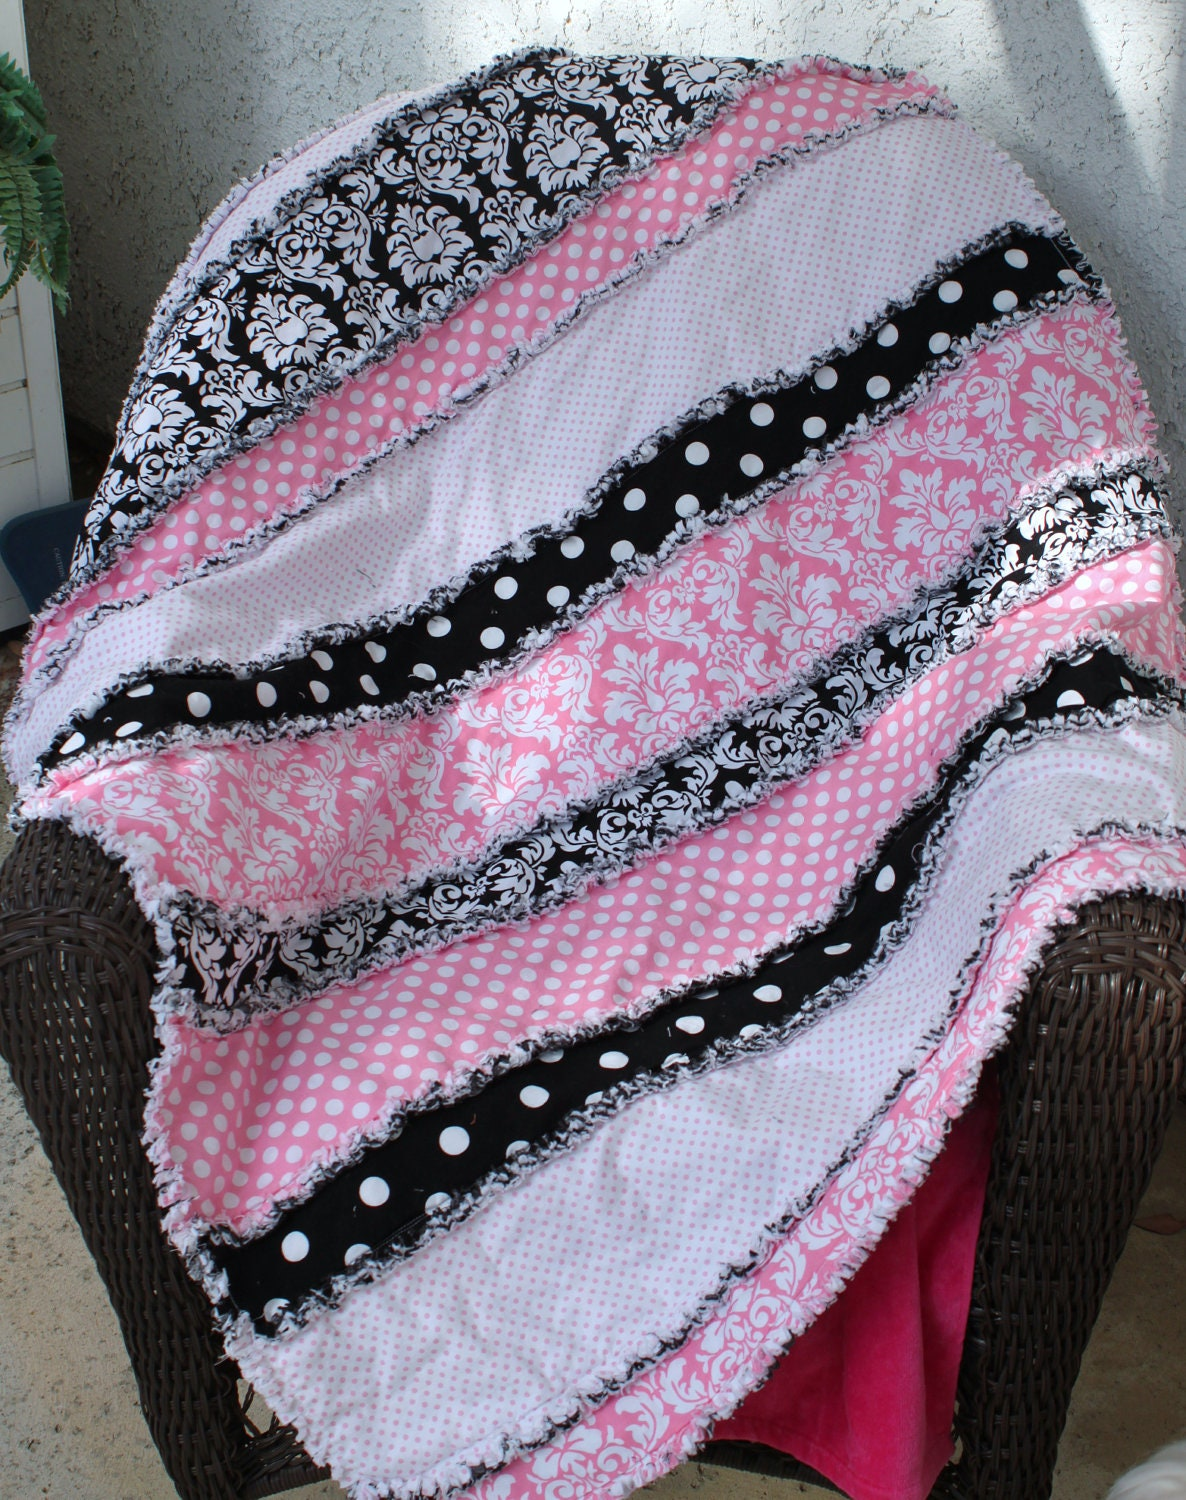 A Rag Quilt For Little Girls 38 X 50 Pink Black And White For